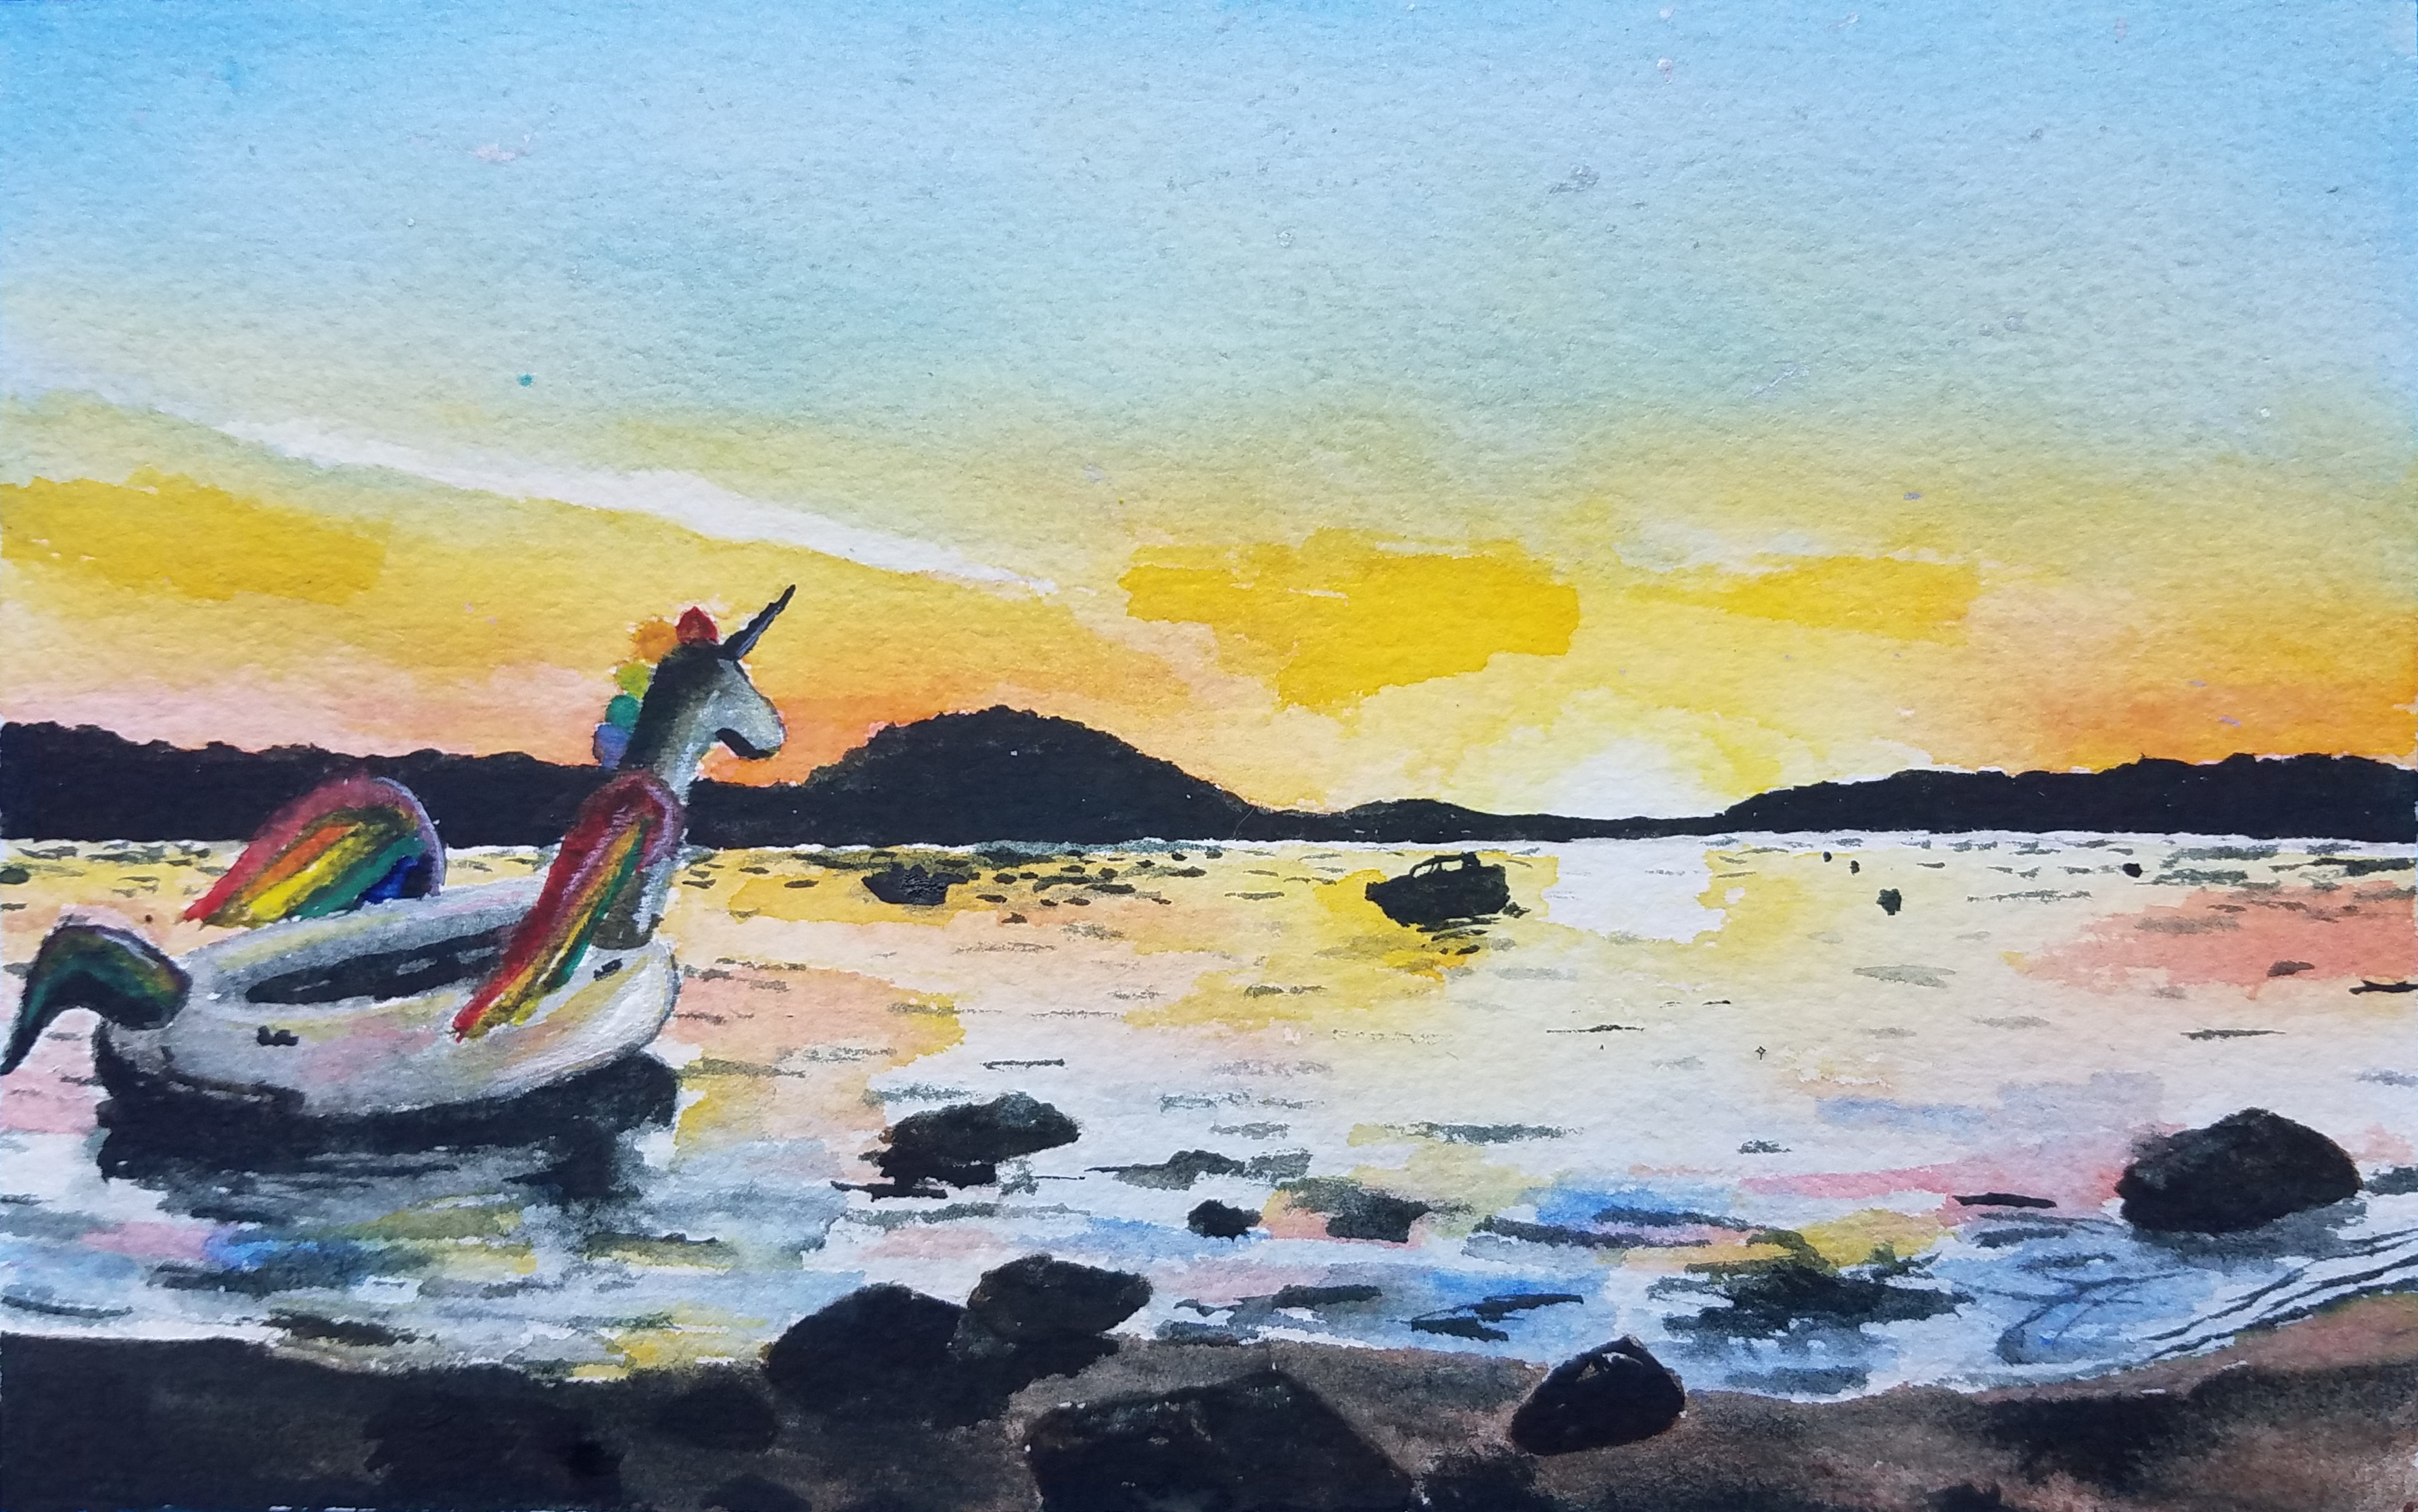 Unicorn Island Watercolor, by Michael McCormack